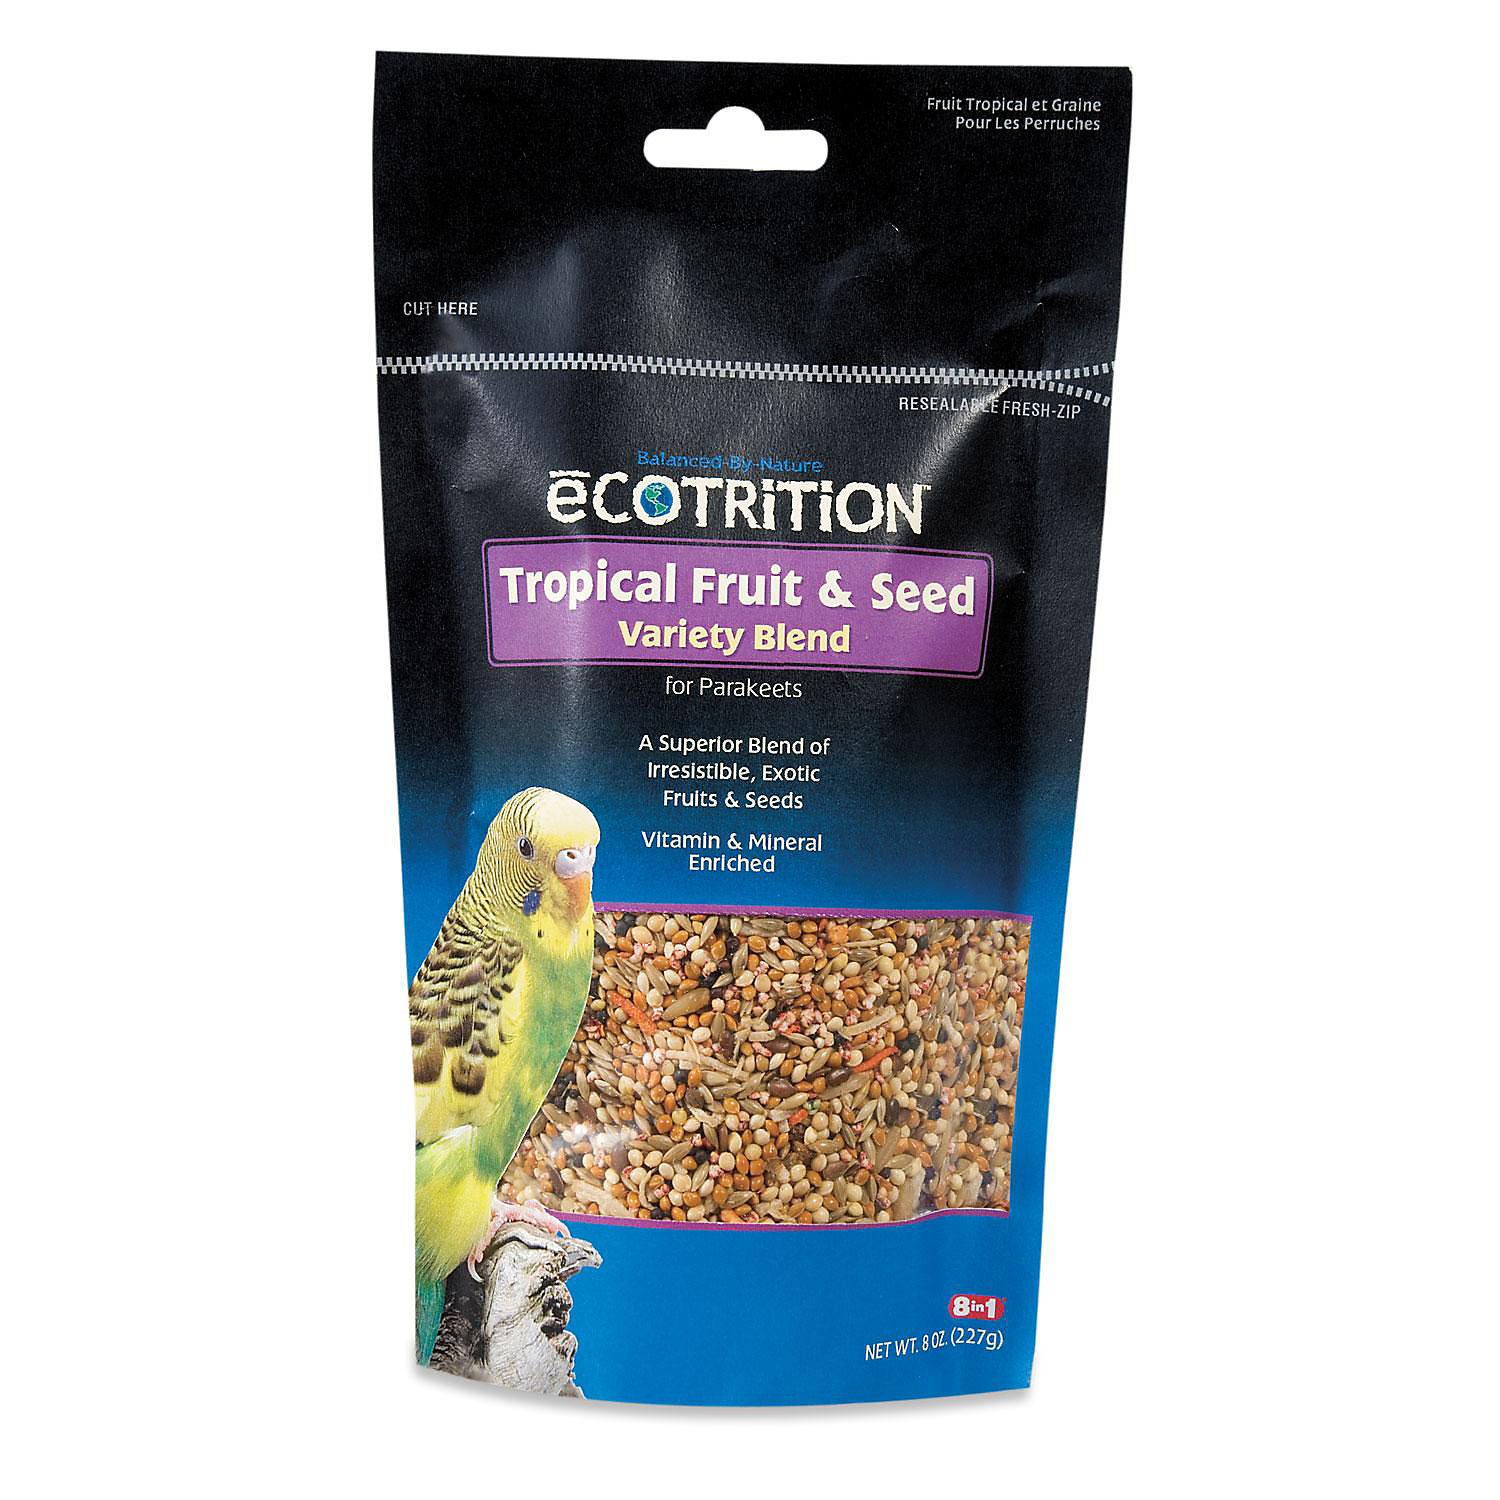 eCOTRITION Tropical Fruit & Seed Variety Blend for Parakeets